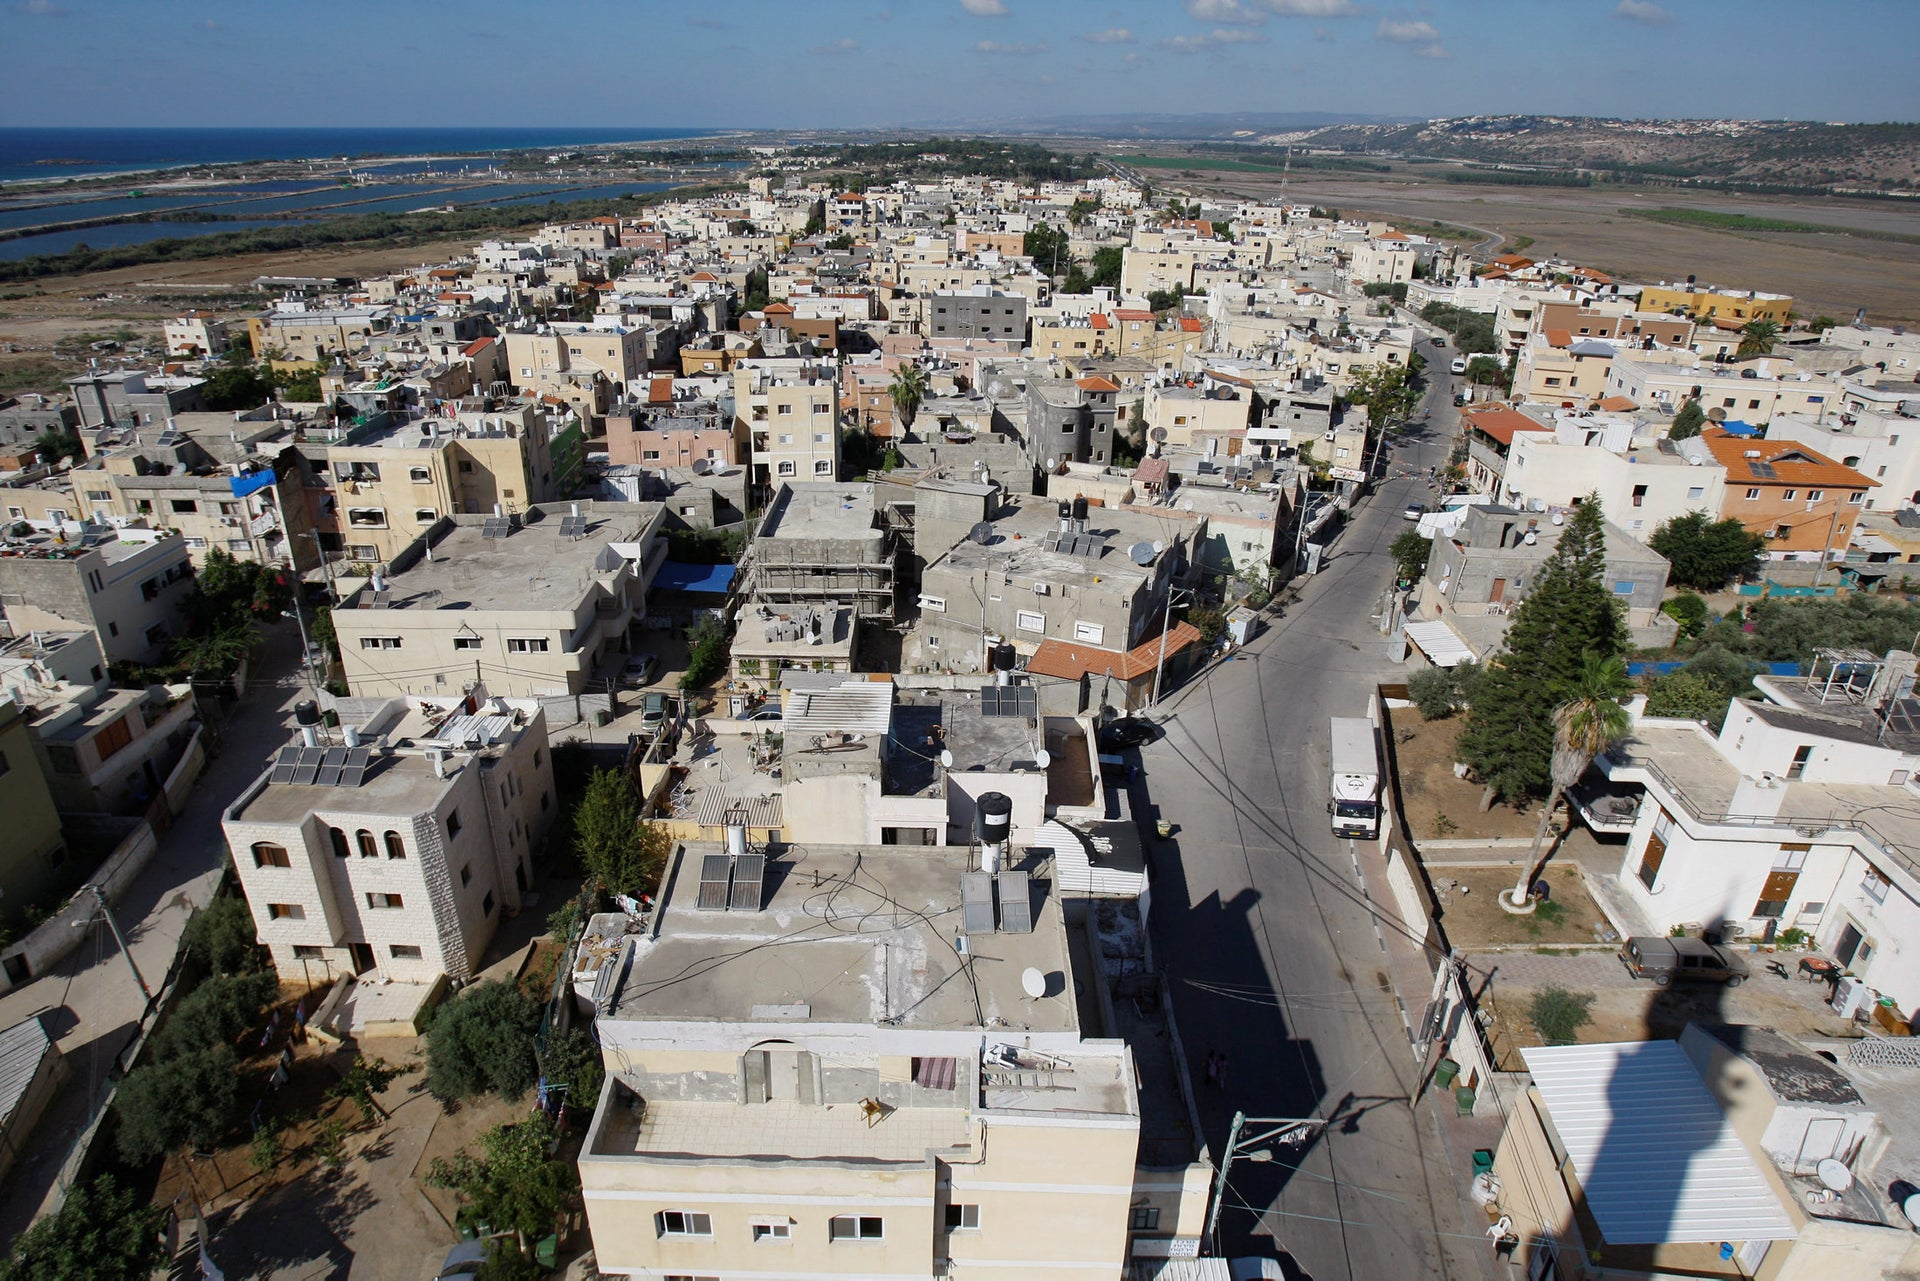 Houses in Jisr al-Zarqa. One of Israel's poorest and most troubled places.